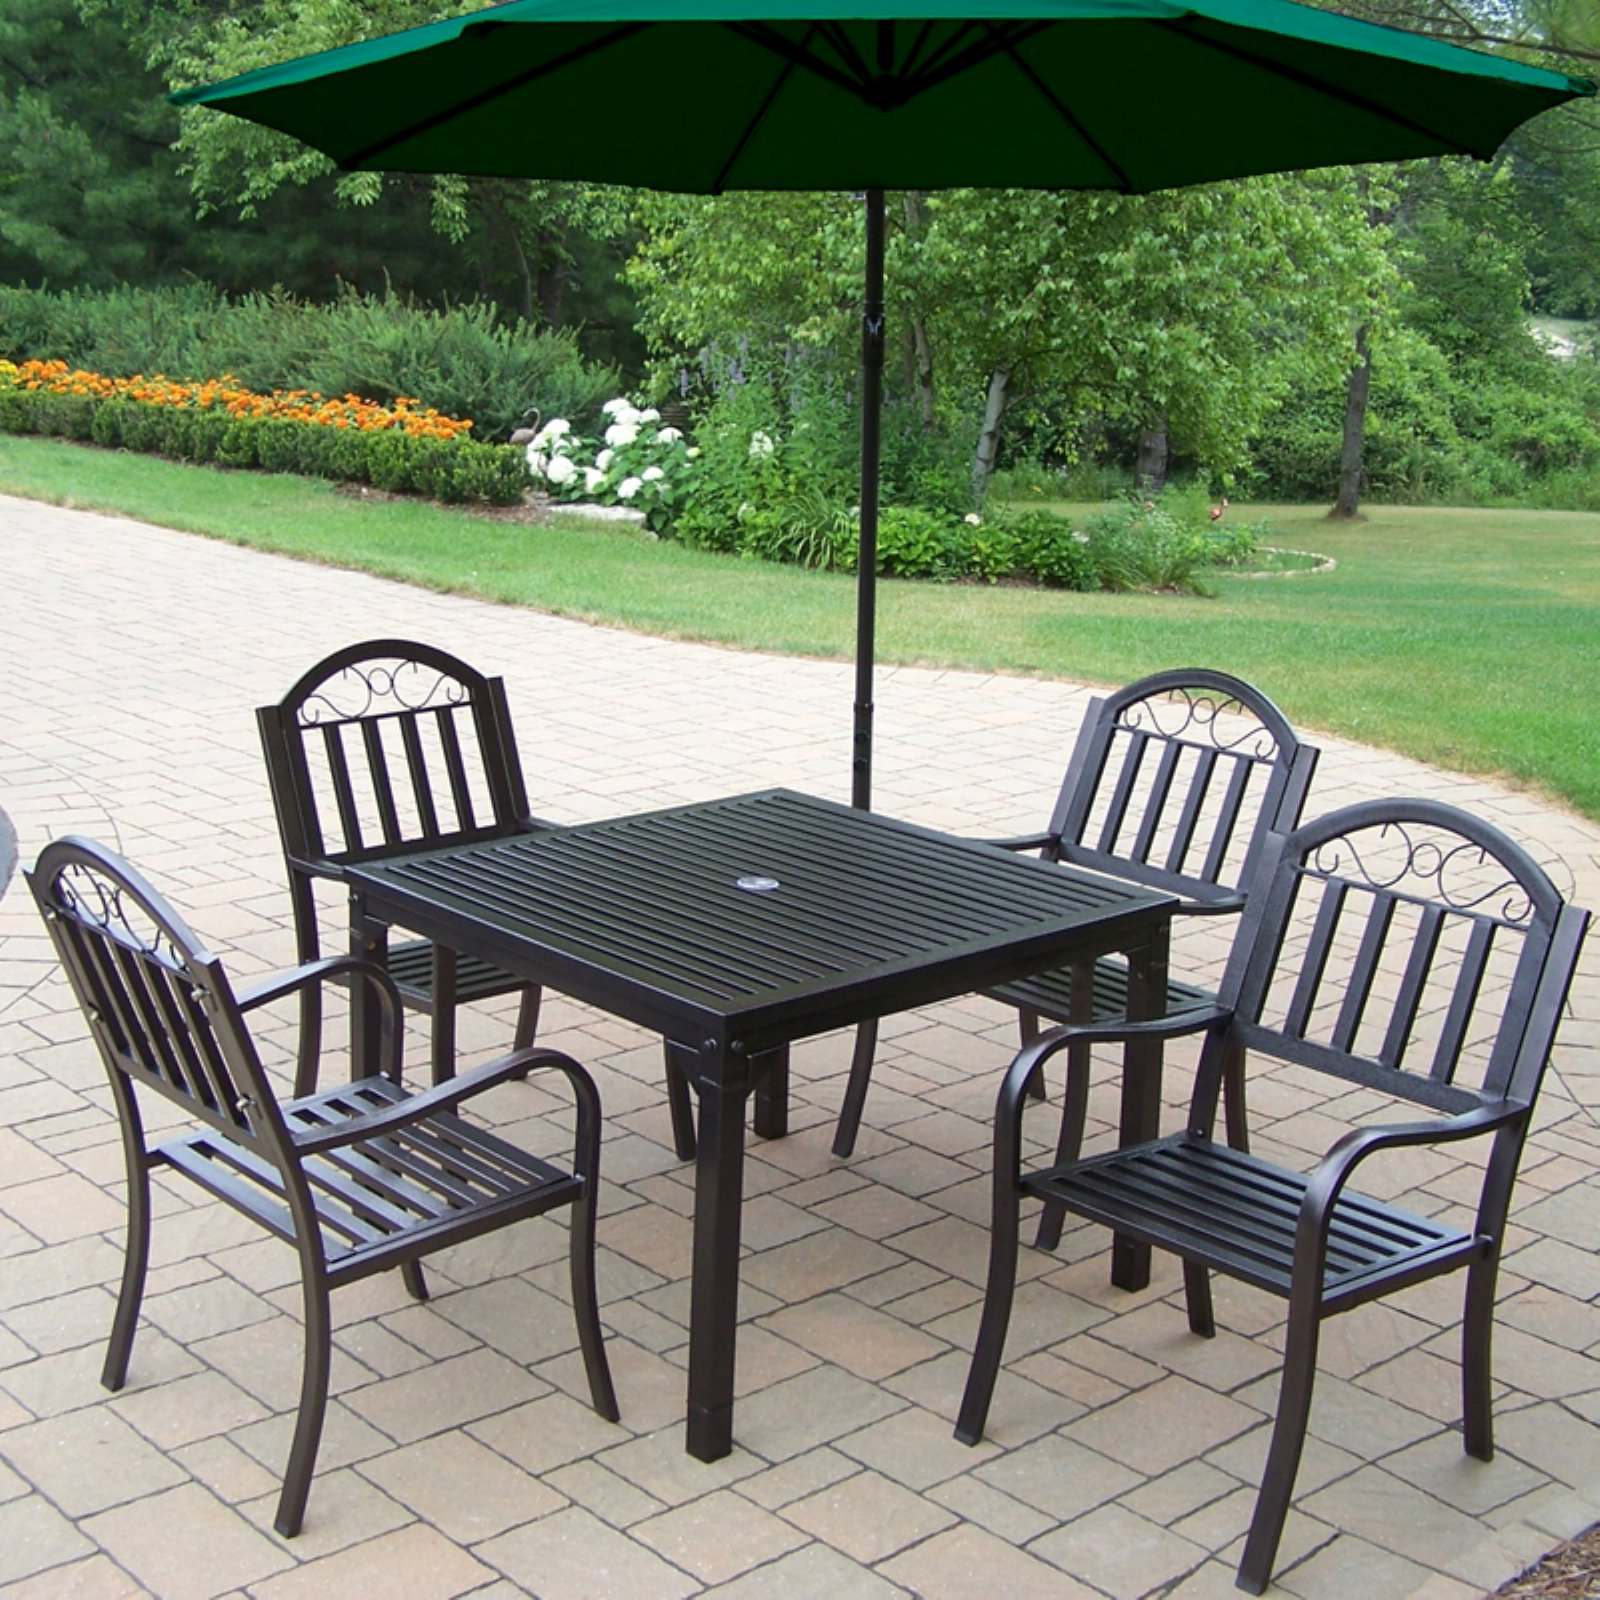 Oakland Living Rochester 40 x 40 in. Patio Dining Set with Cantilever Umbrella